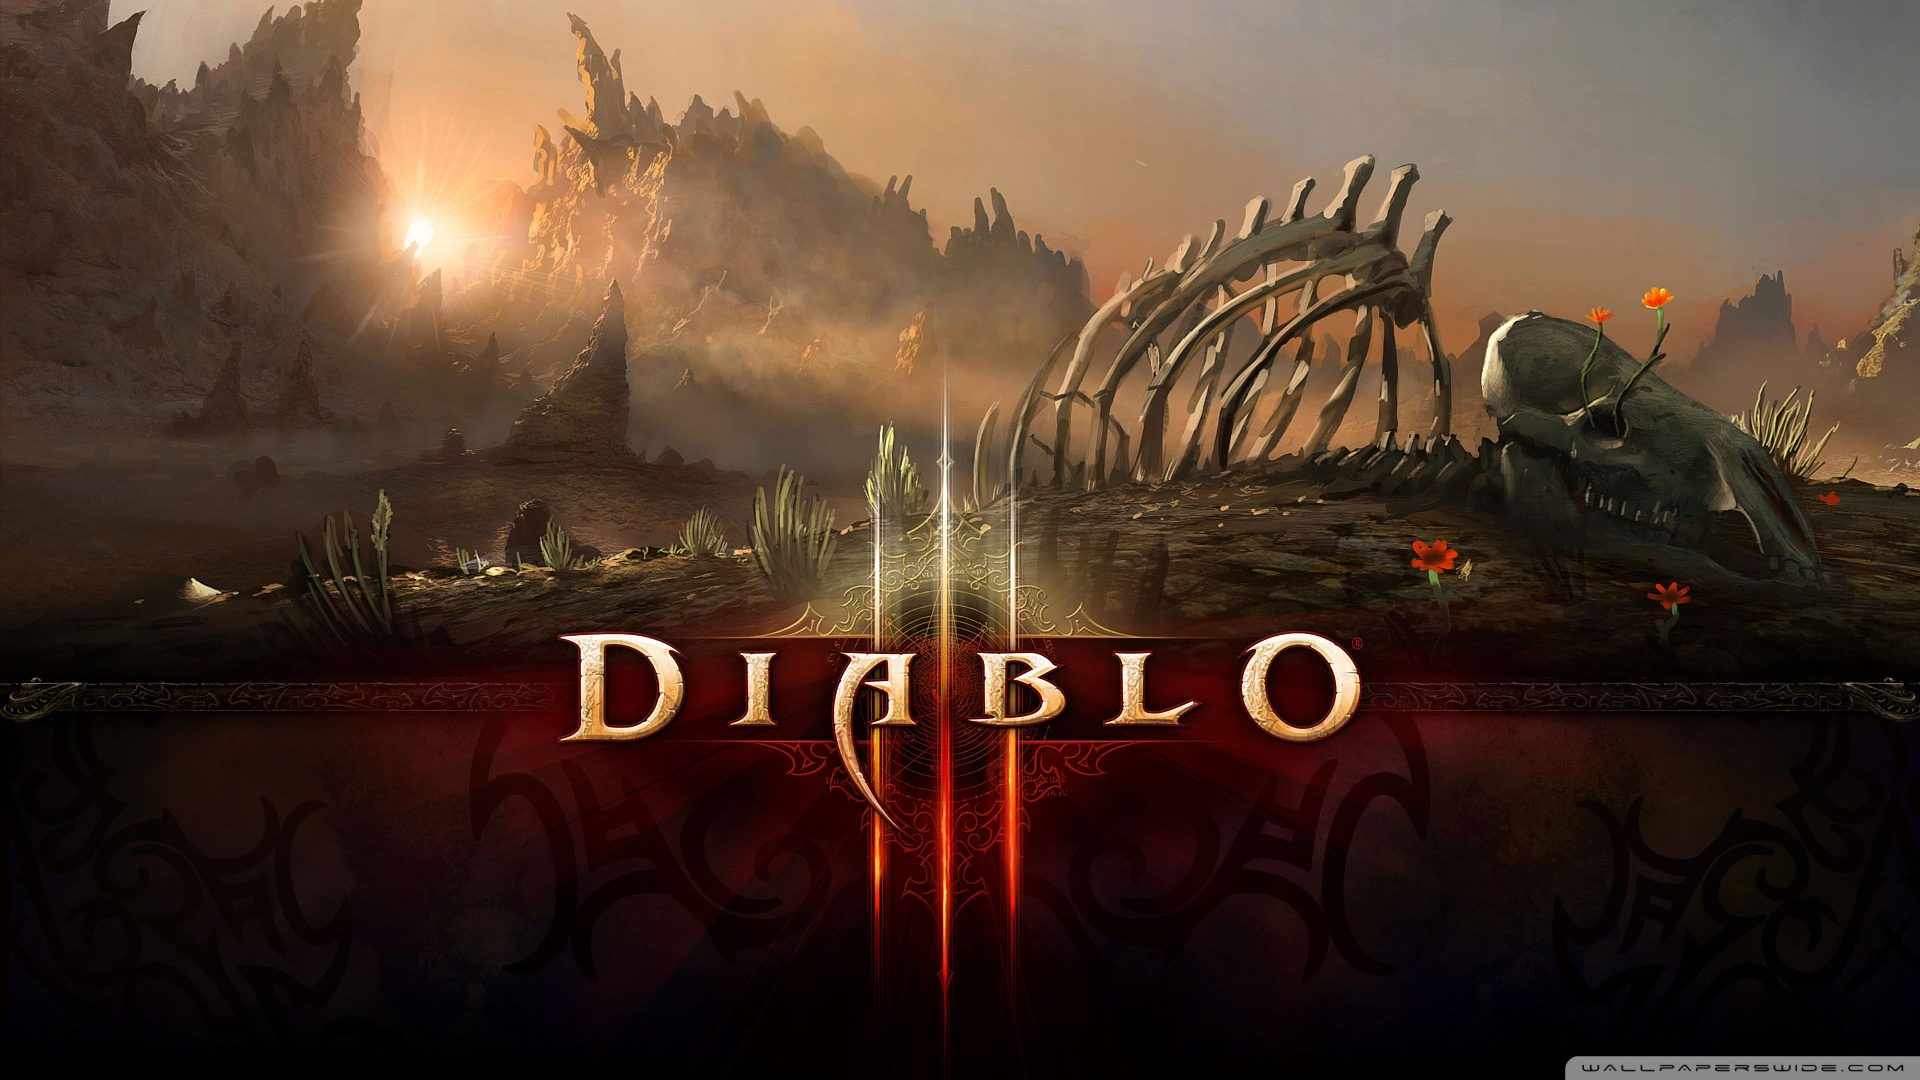 DIABLO 3 III (EU) Standard Edition (SCAN) are ready to play